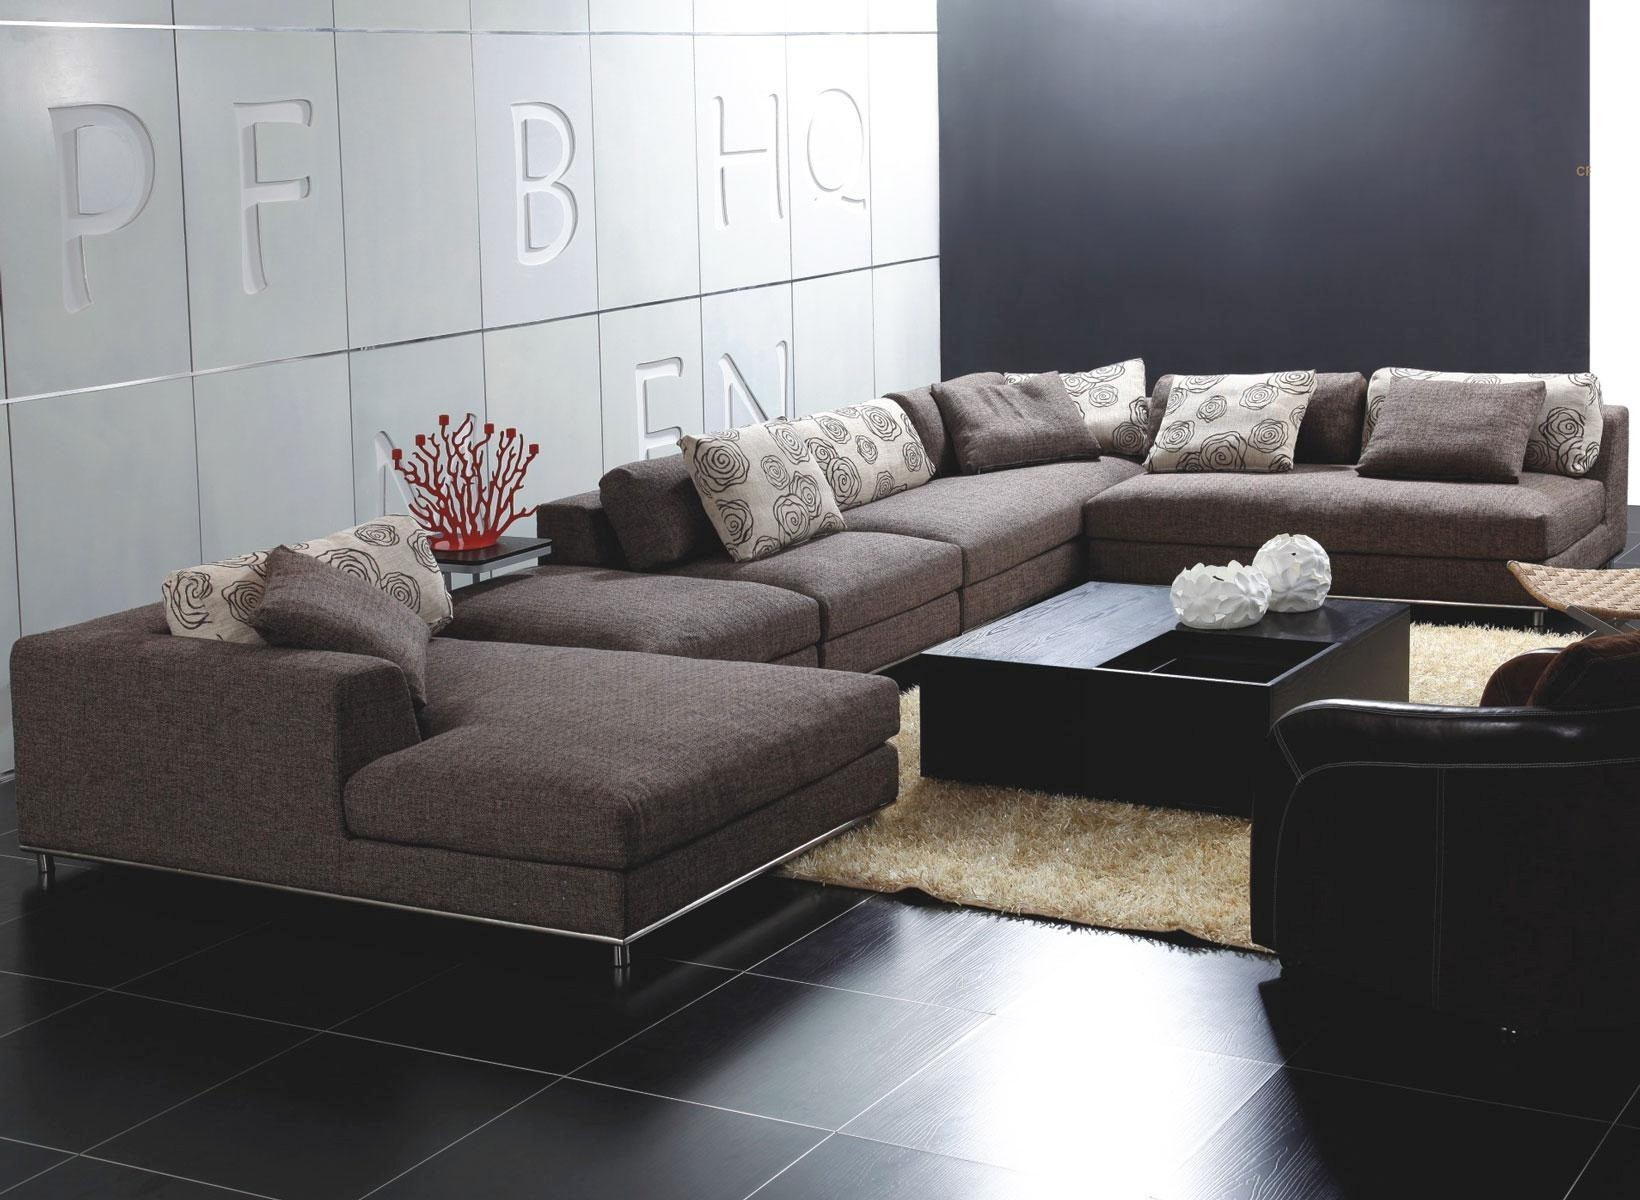 Best Sectional sofa Brands Latest Inspiring Sectional Couch Covers Canada Sectional sofa then Construction